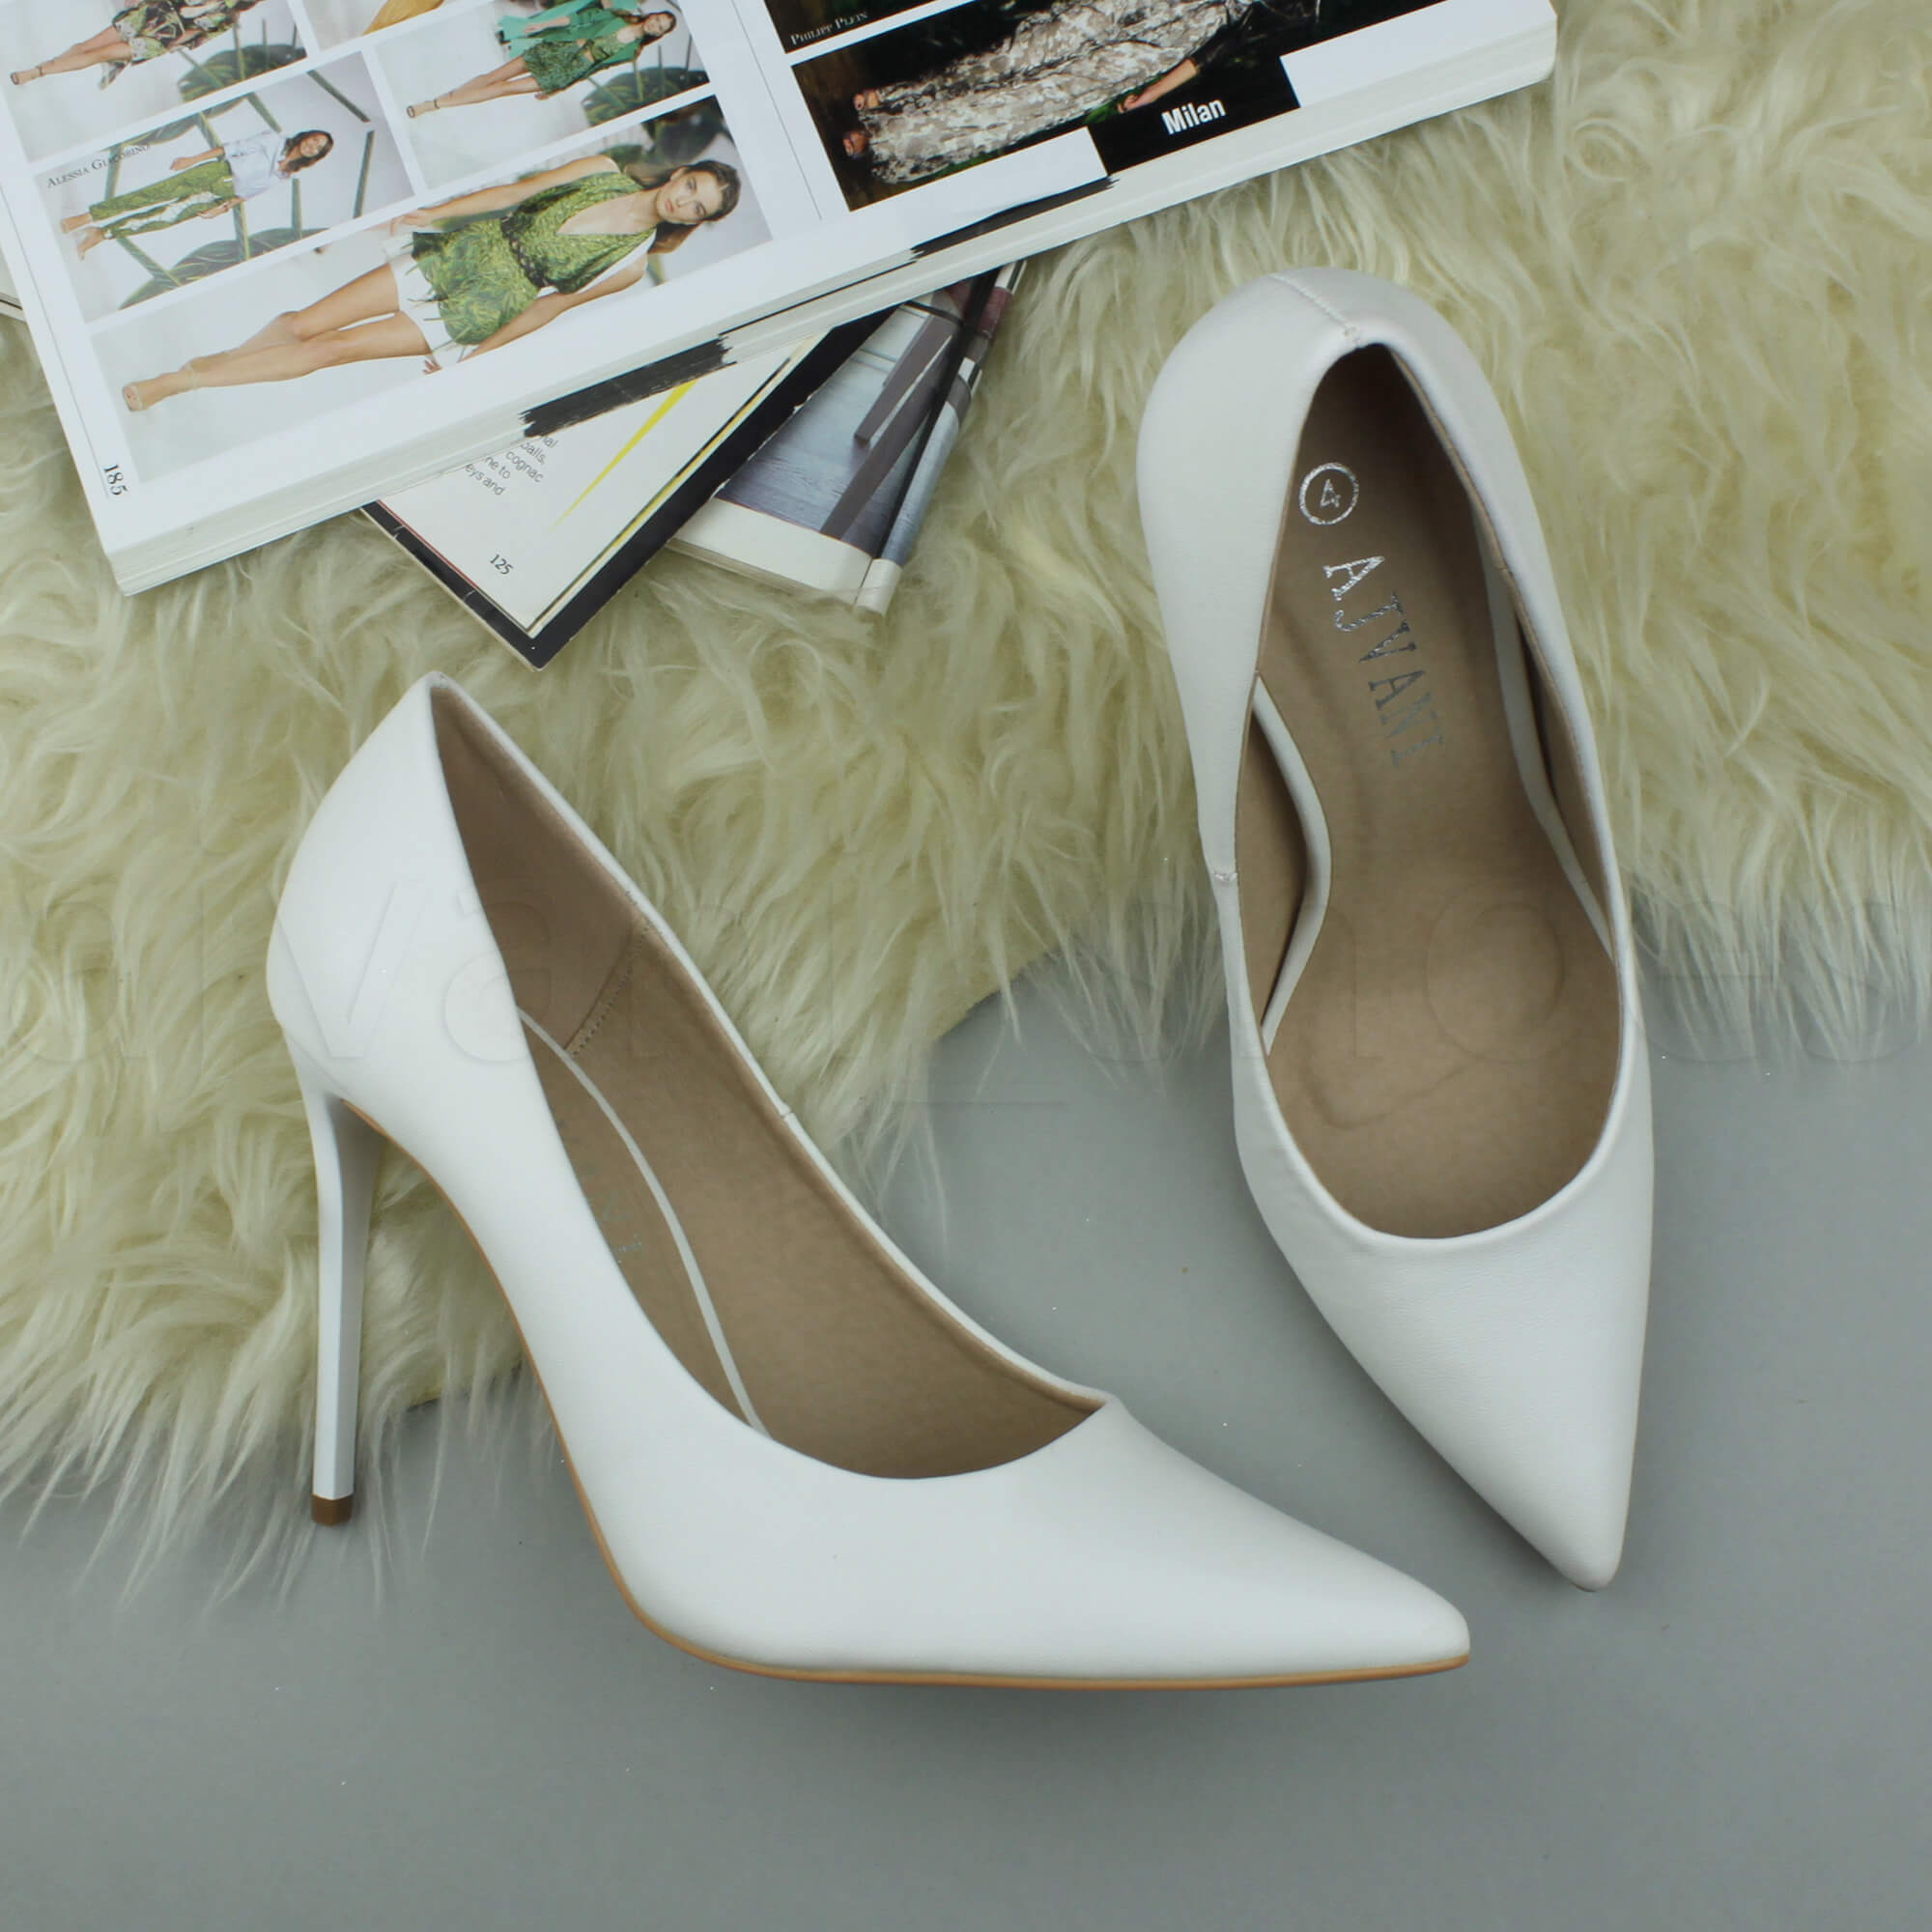 WOMENS-LADIES-HIGH-HEEL-POINTED-CONTRAST-COURT-SMART-PARTY-WORK-SHOES-PUMPS-SIZE thumbnail 218